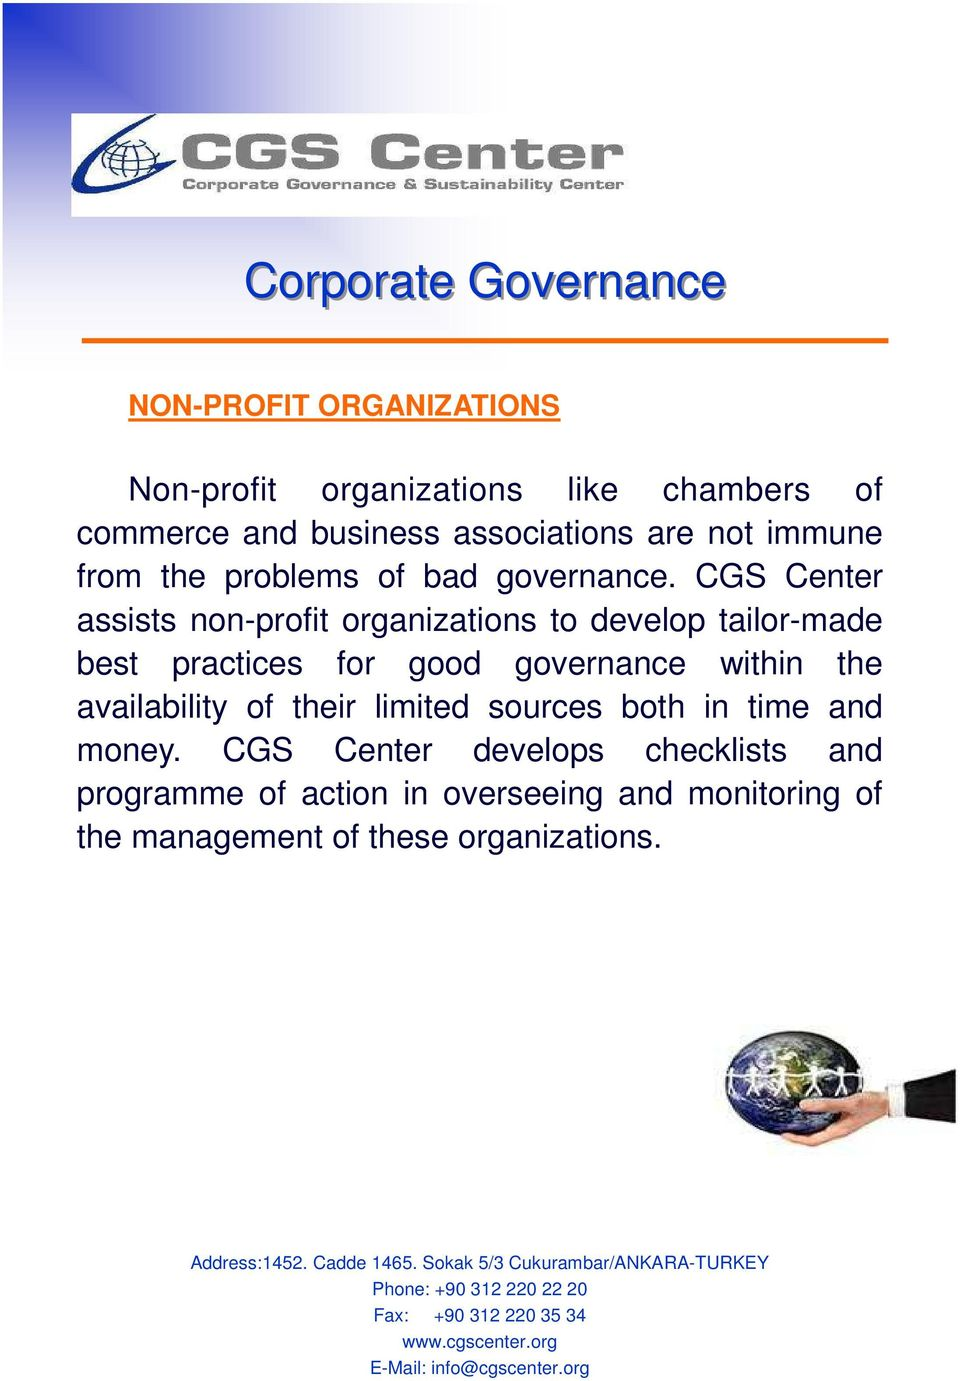 CGS Center assists non-profit organizations to develop tailor-made best practices for good governance within the availability of their limited sources both